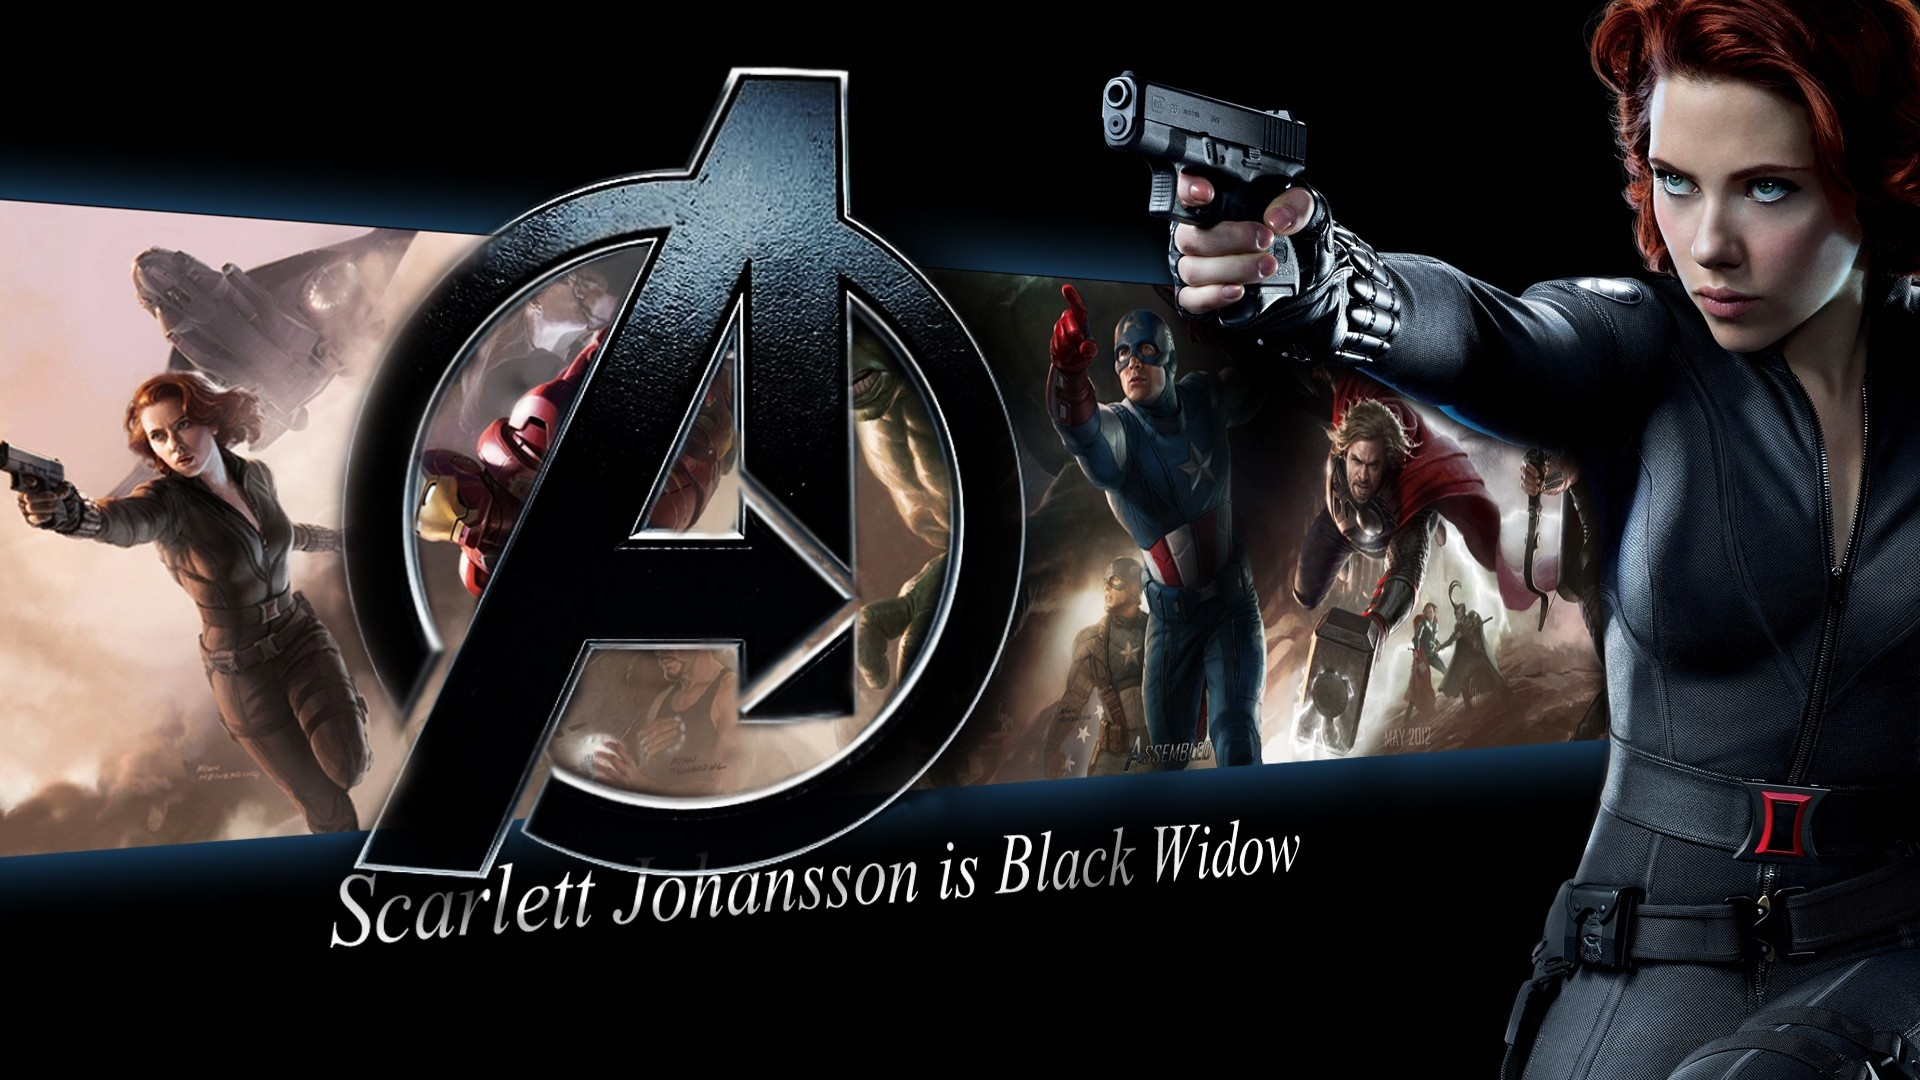 Wallpaper Scarlett Johansson Is Black Widow The Avengers 1920x1080 Full Hd 2k Picture Image